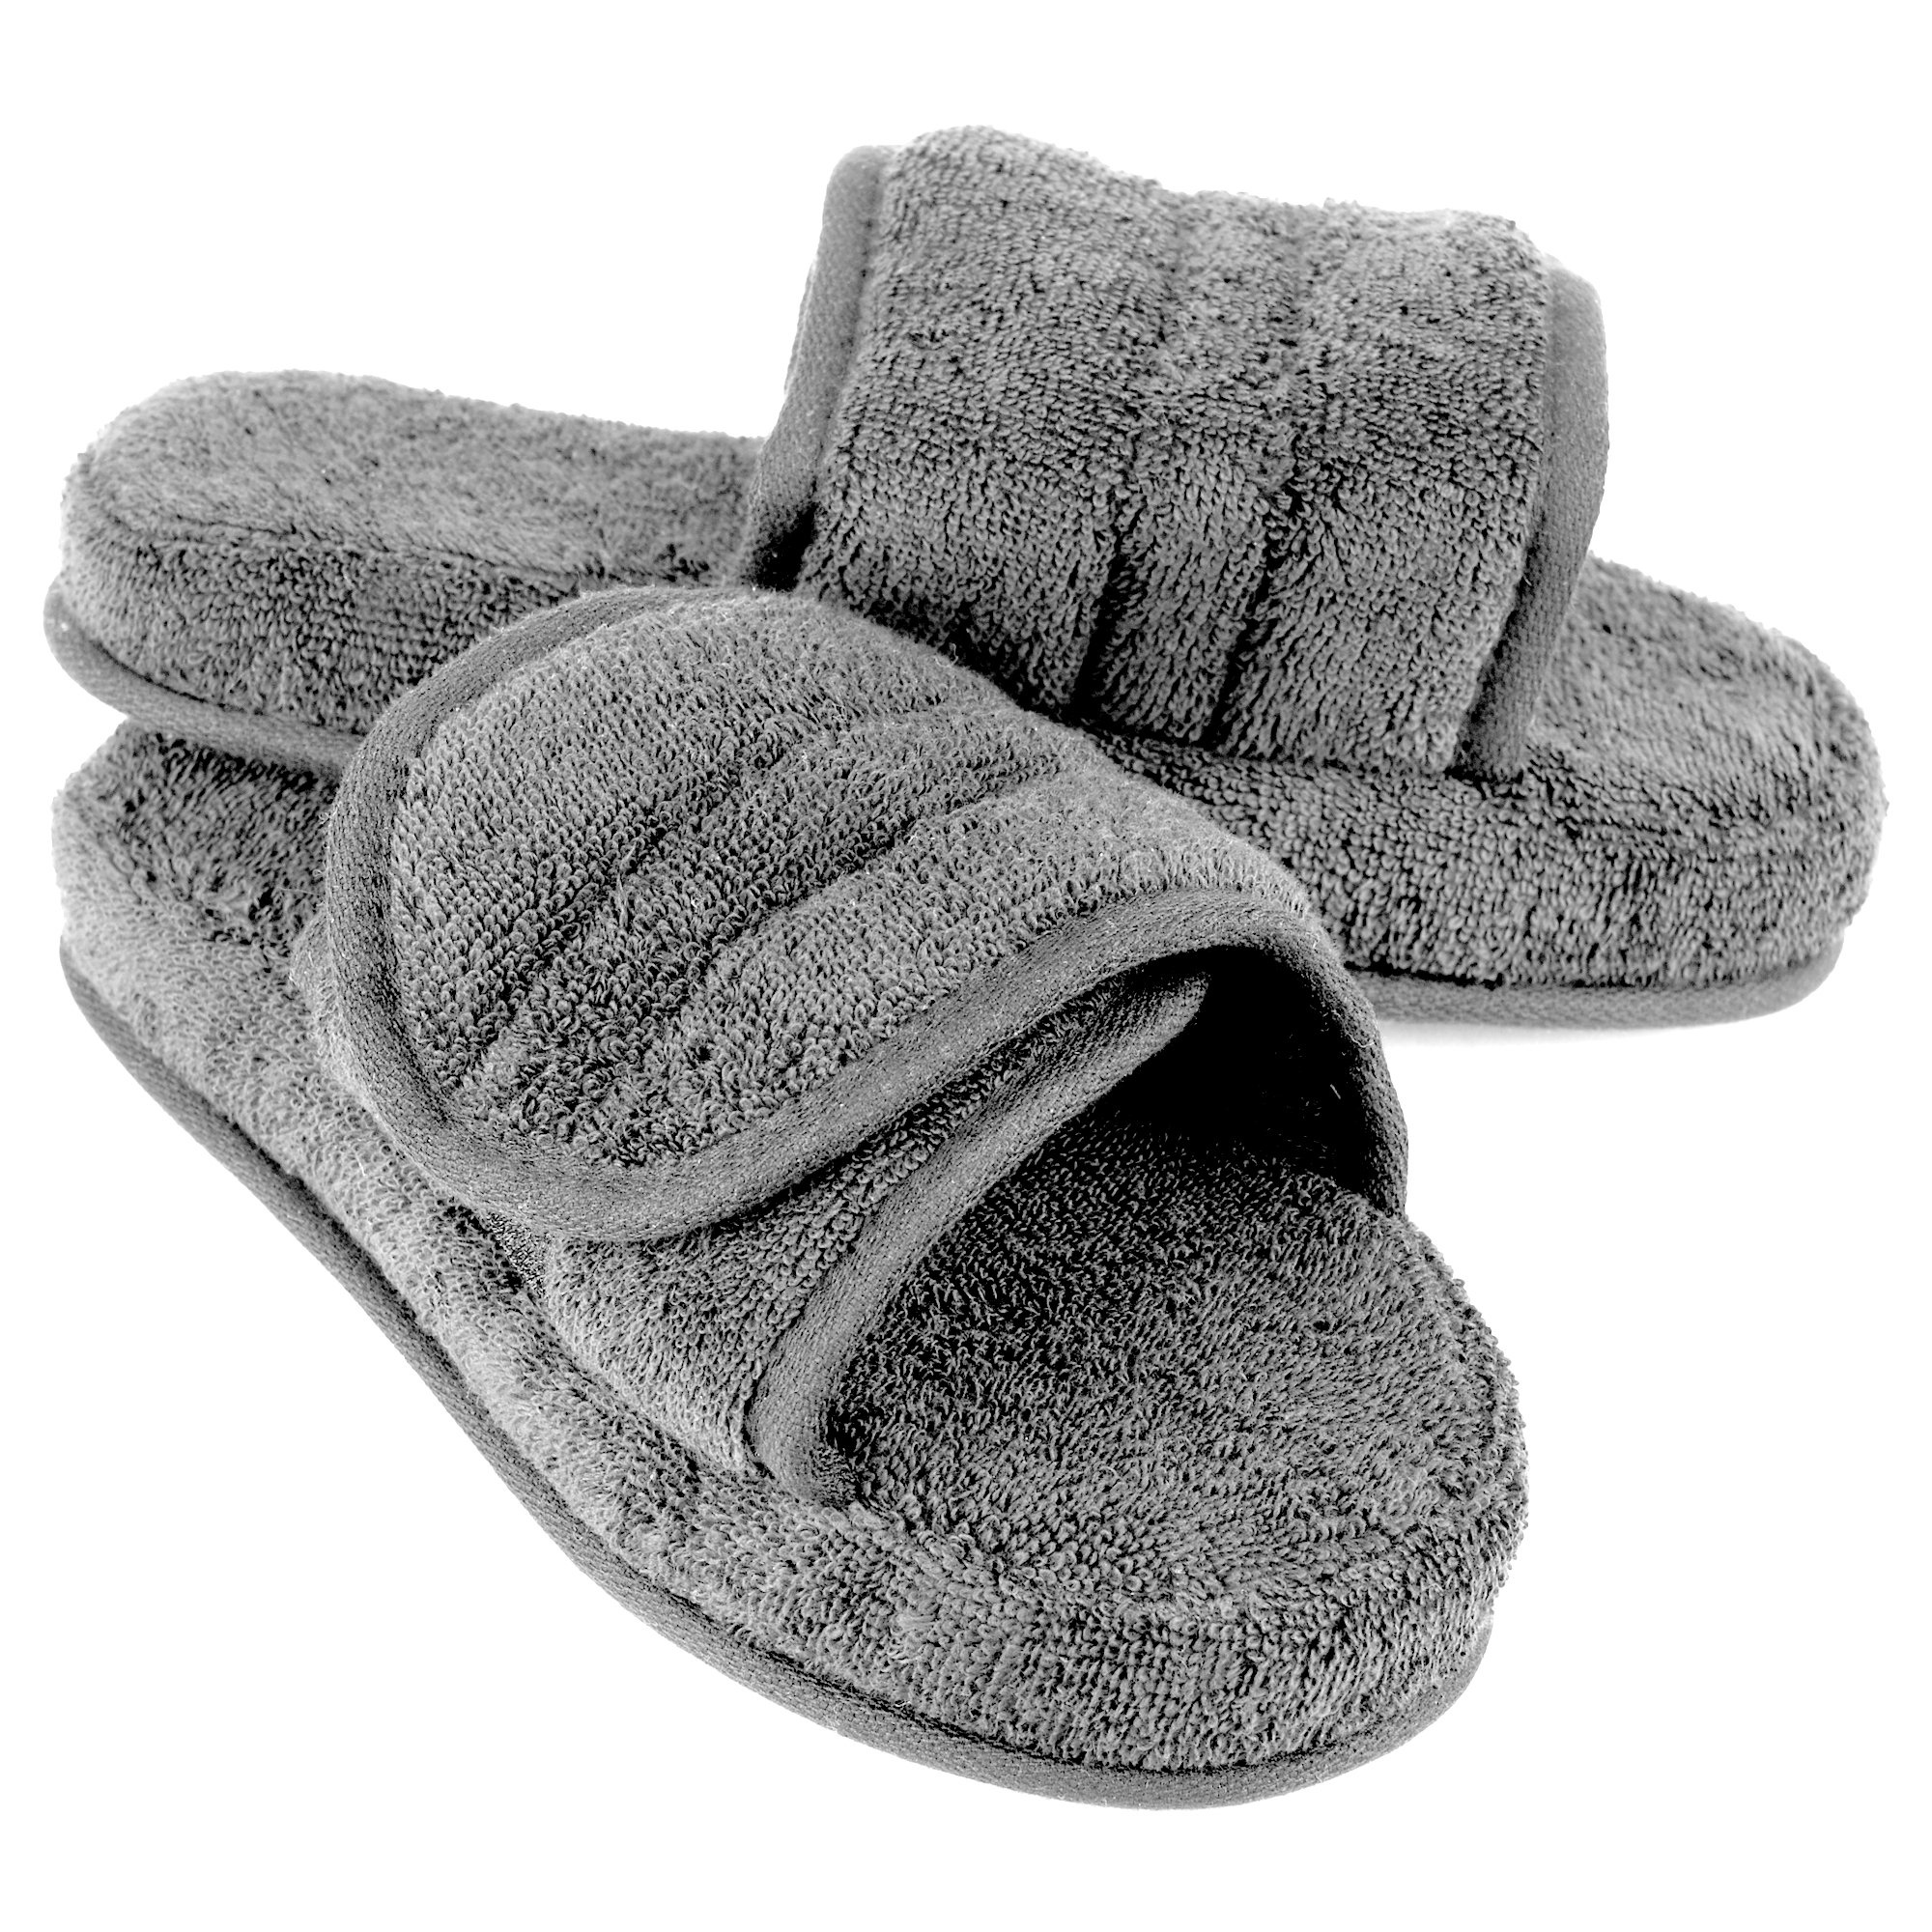 28570994c5927 Best Rated in Spa Slippers & Helpful Customer Reviews - Amazon.com